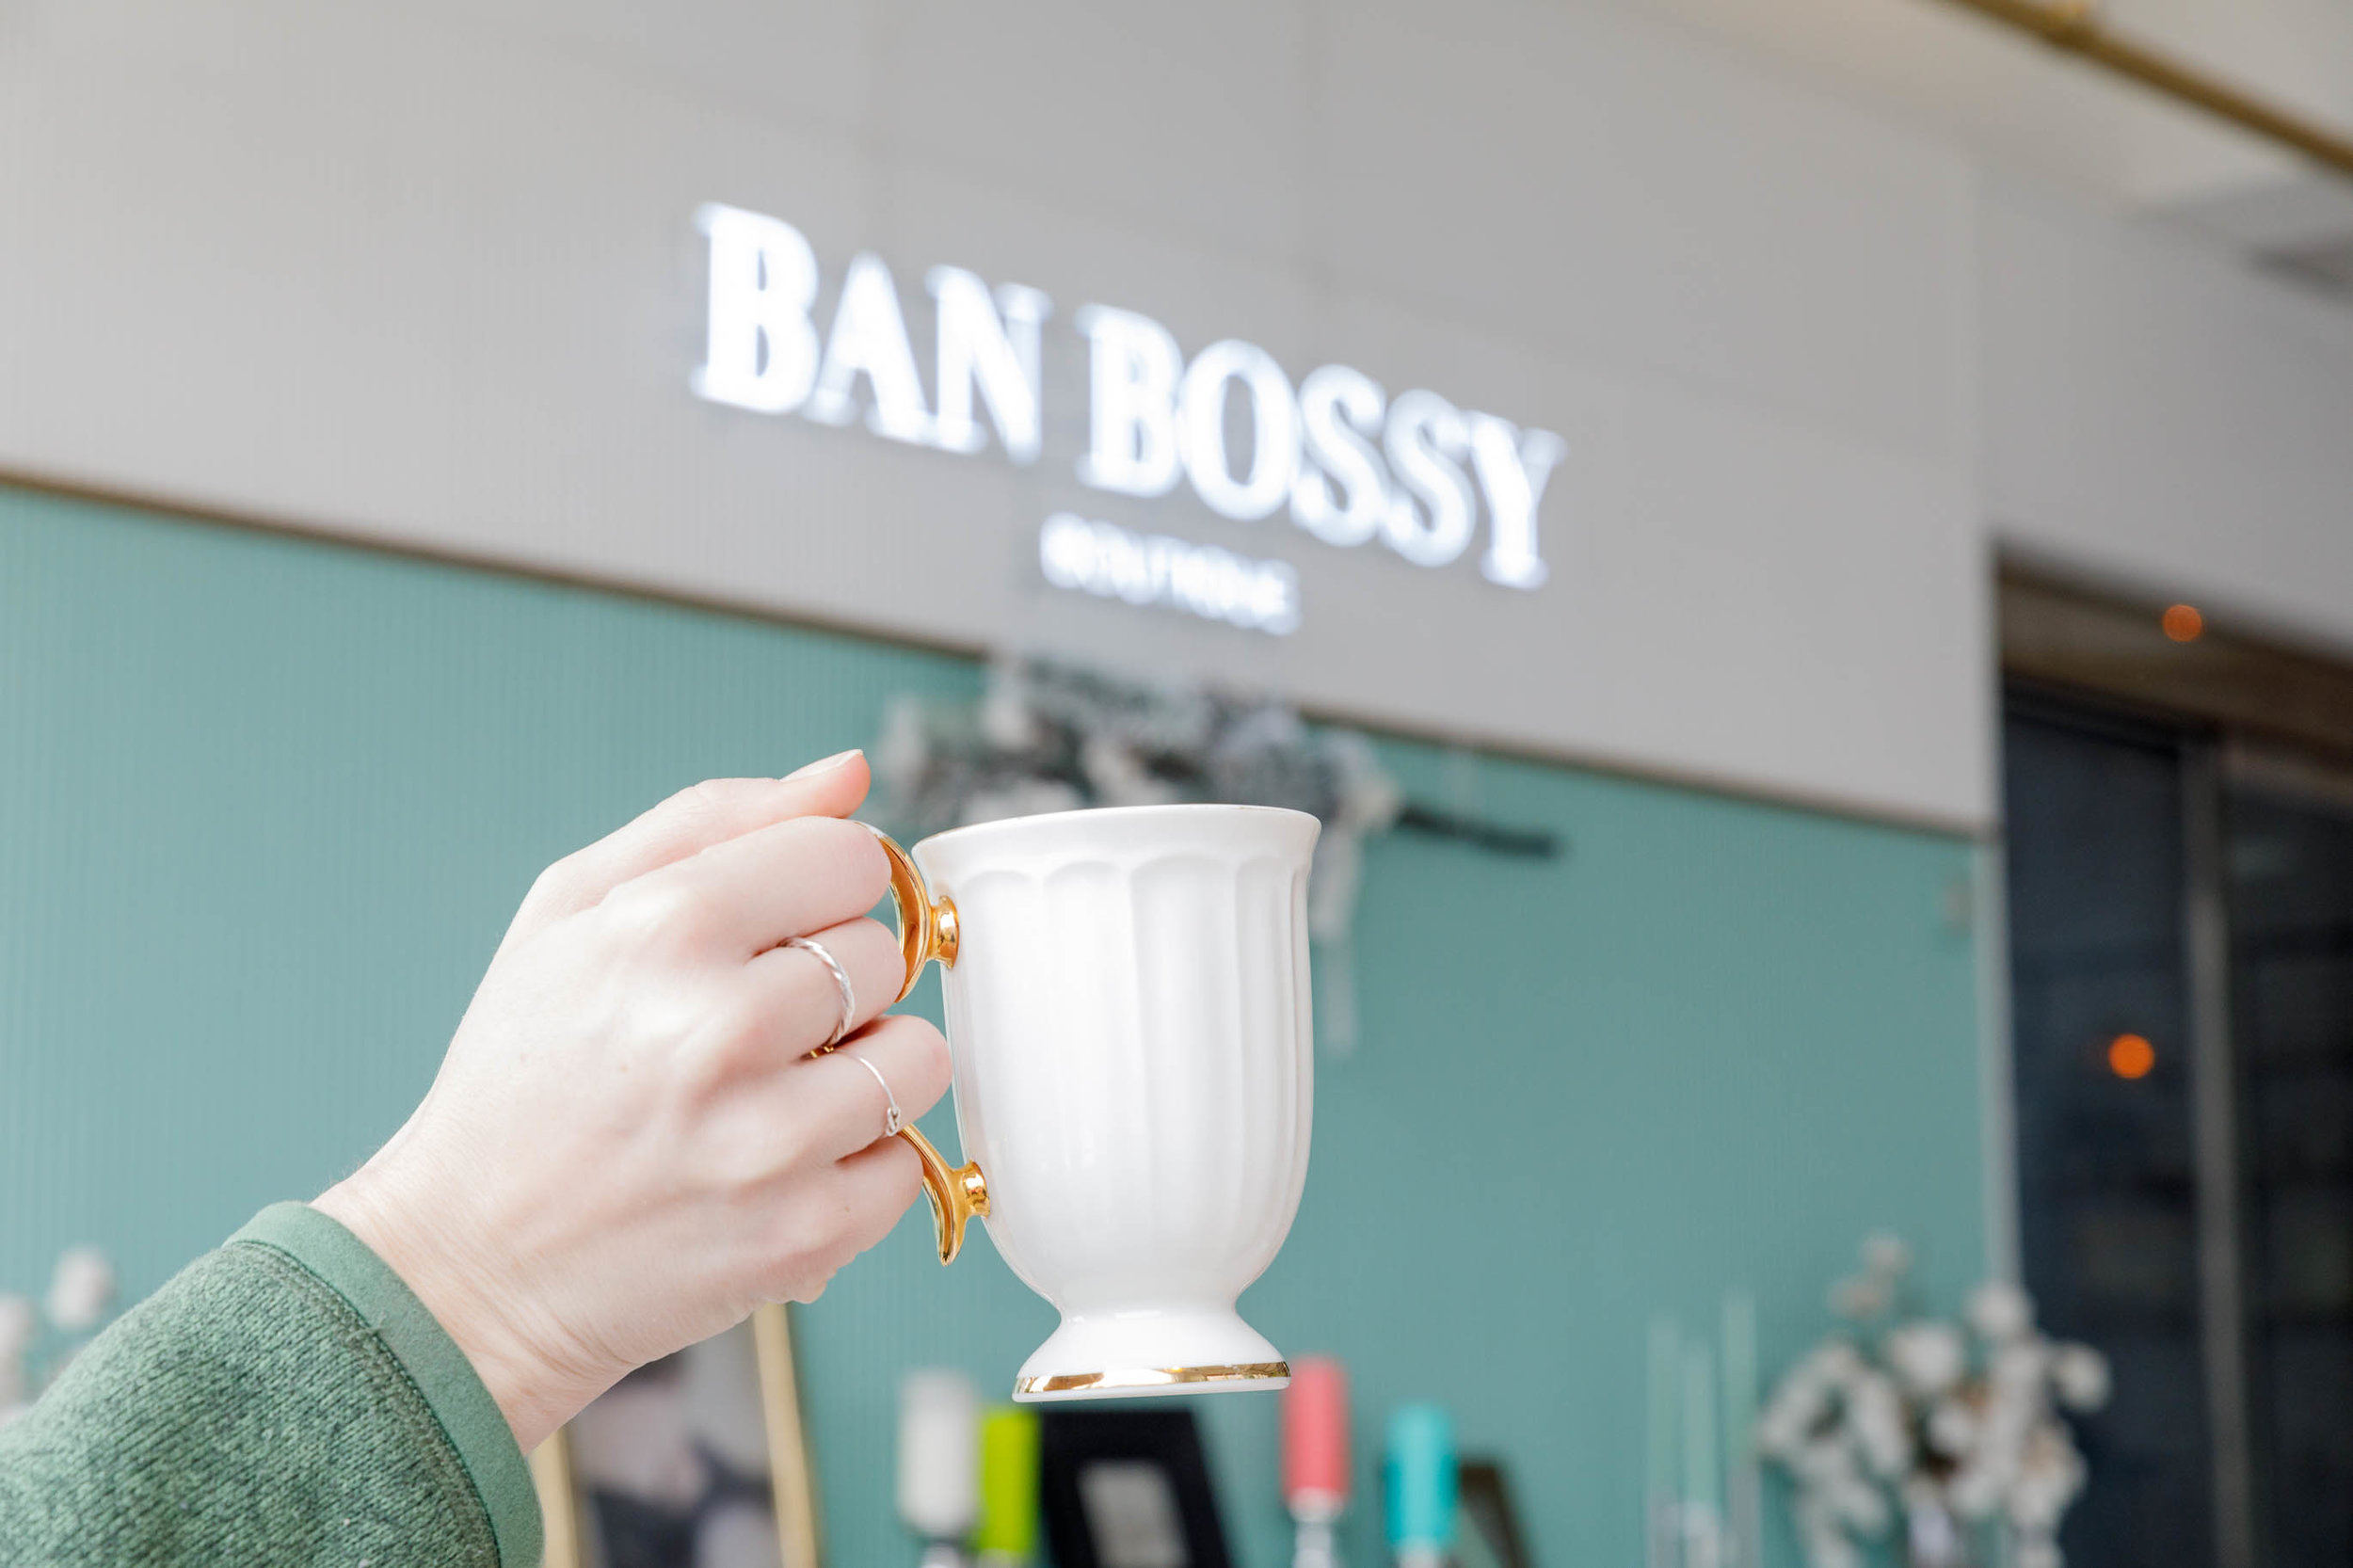 Ban Bossy Boutique